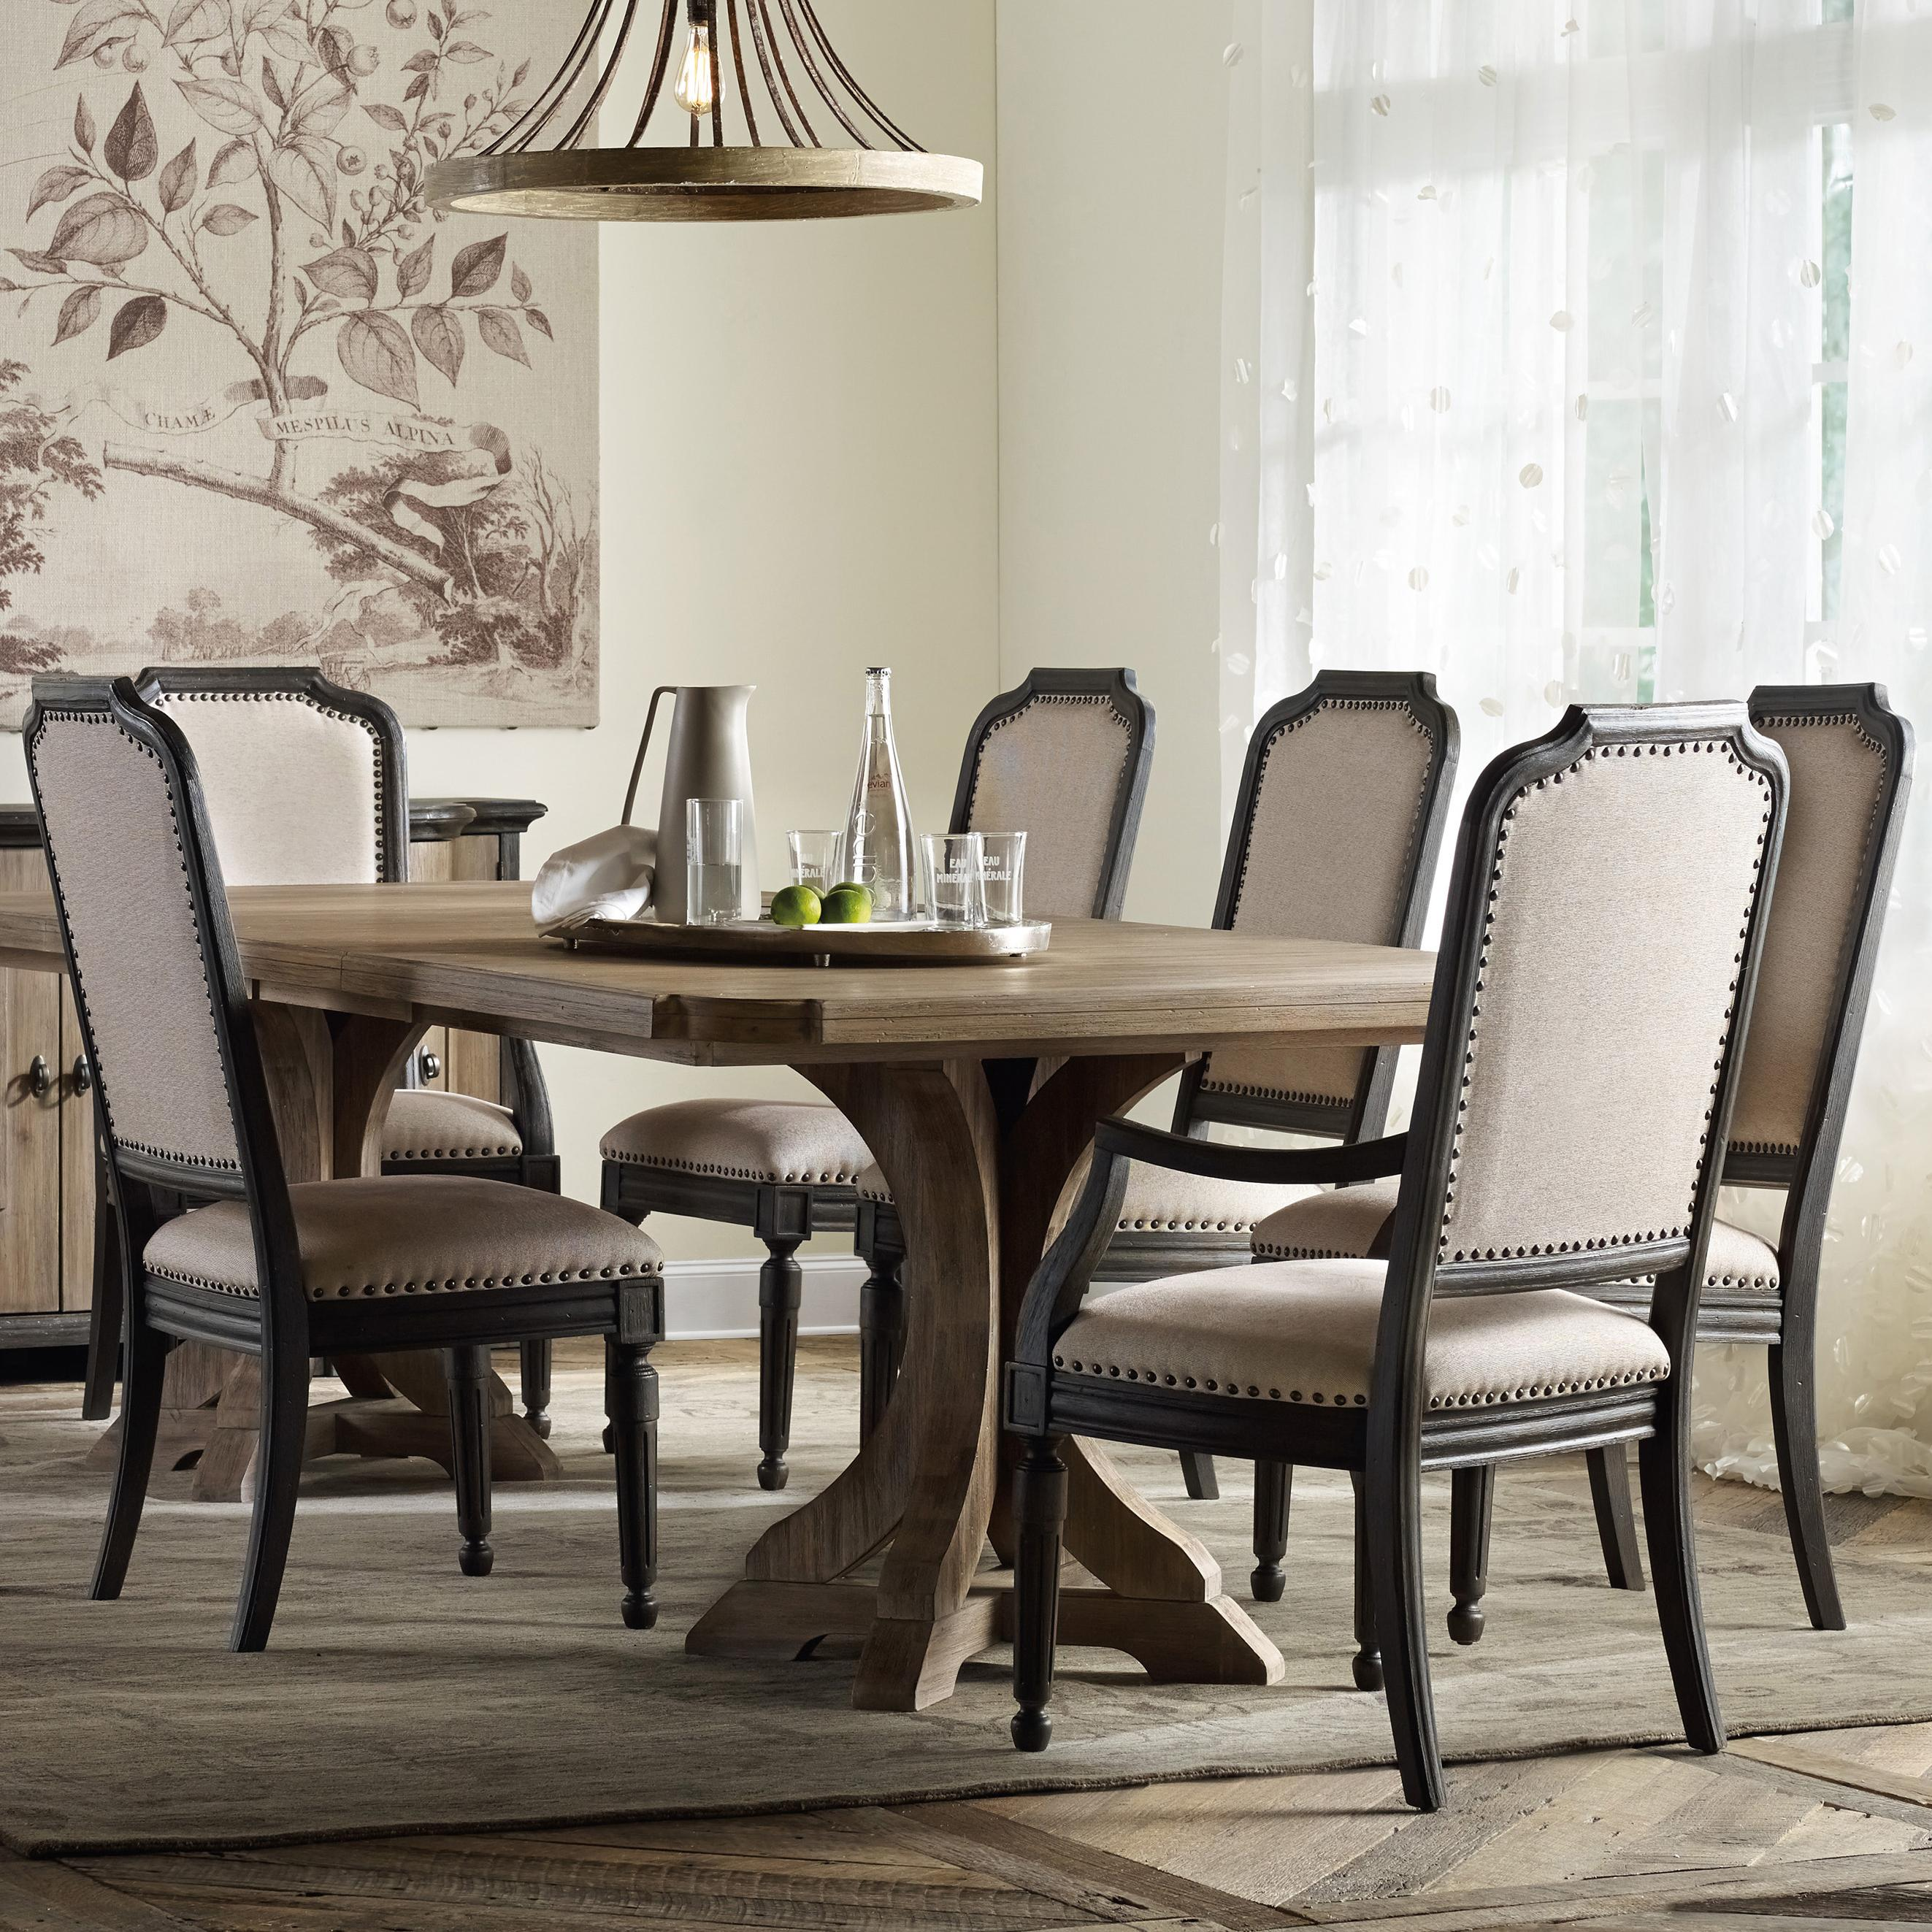 Dining Room Upholstered Chairs Corsica Rectangle Pedestal Dining Table Set With Upholstered Chairs By Hooker Furniture At Stoney Creek Furniture